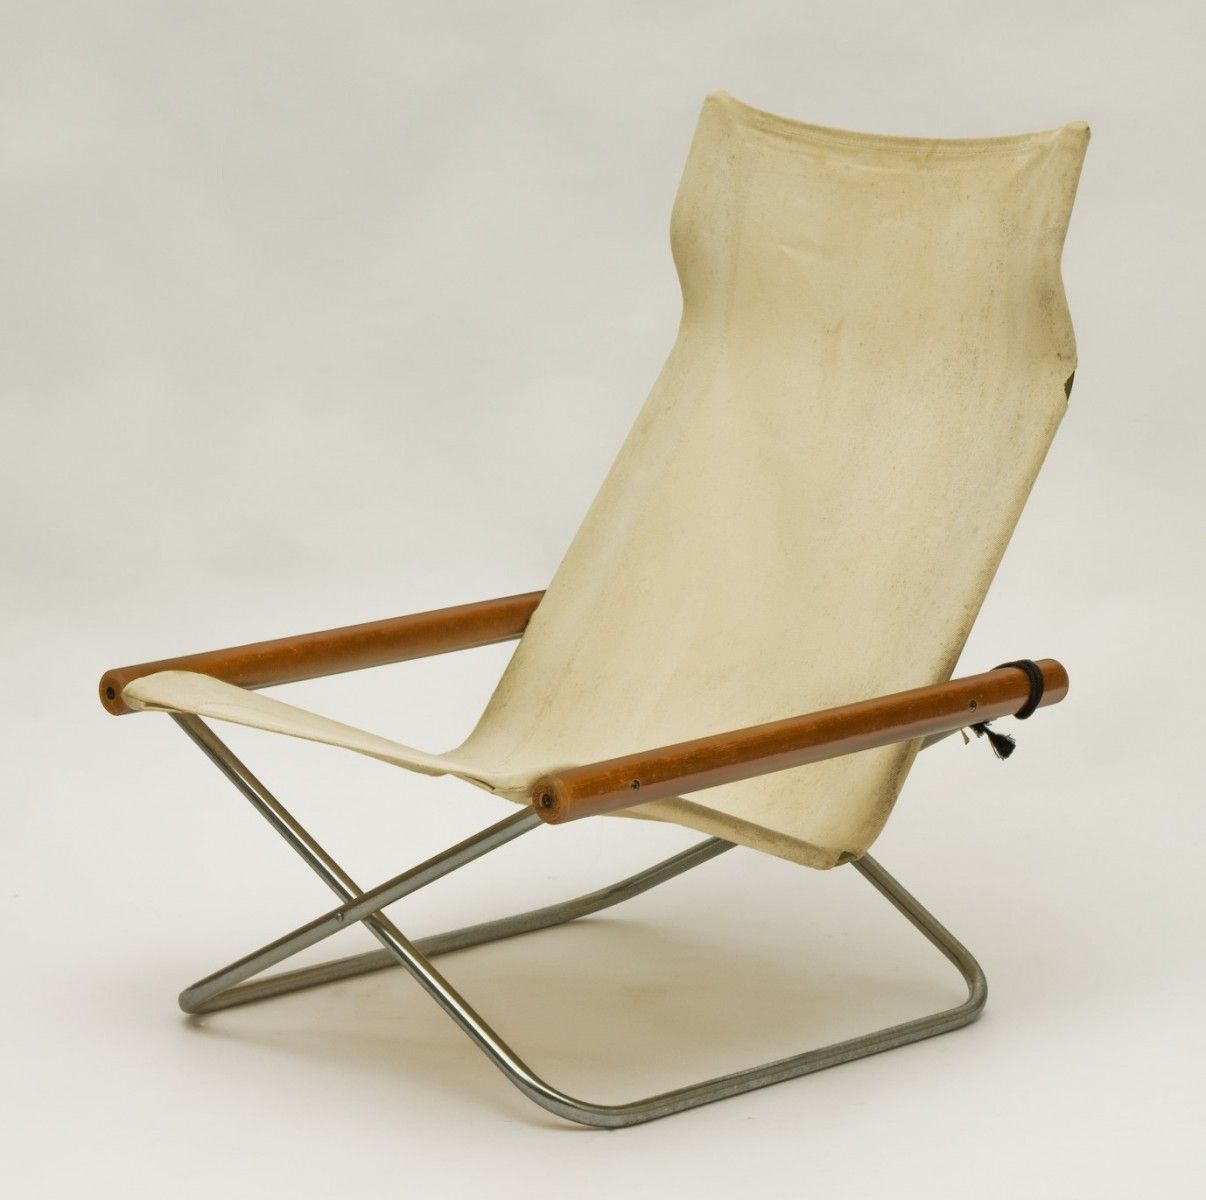 Japanese Nychair Folding Chair By Takeshi Nii Chair Design Outdoor Folding Chairs Folding Chair